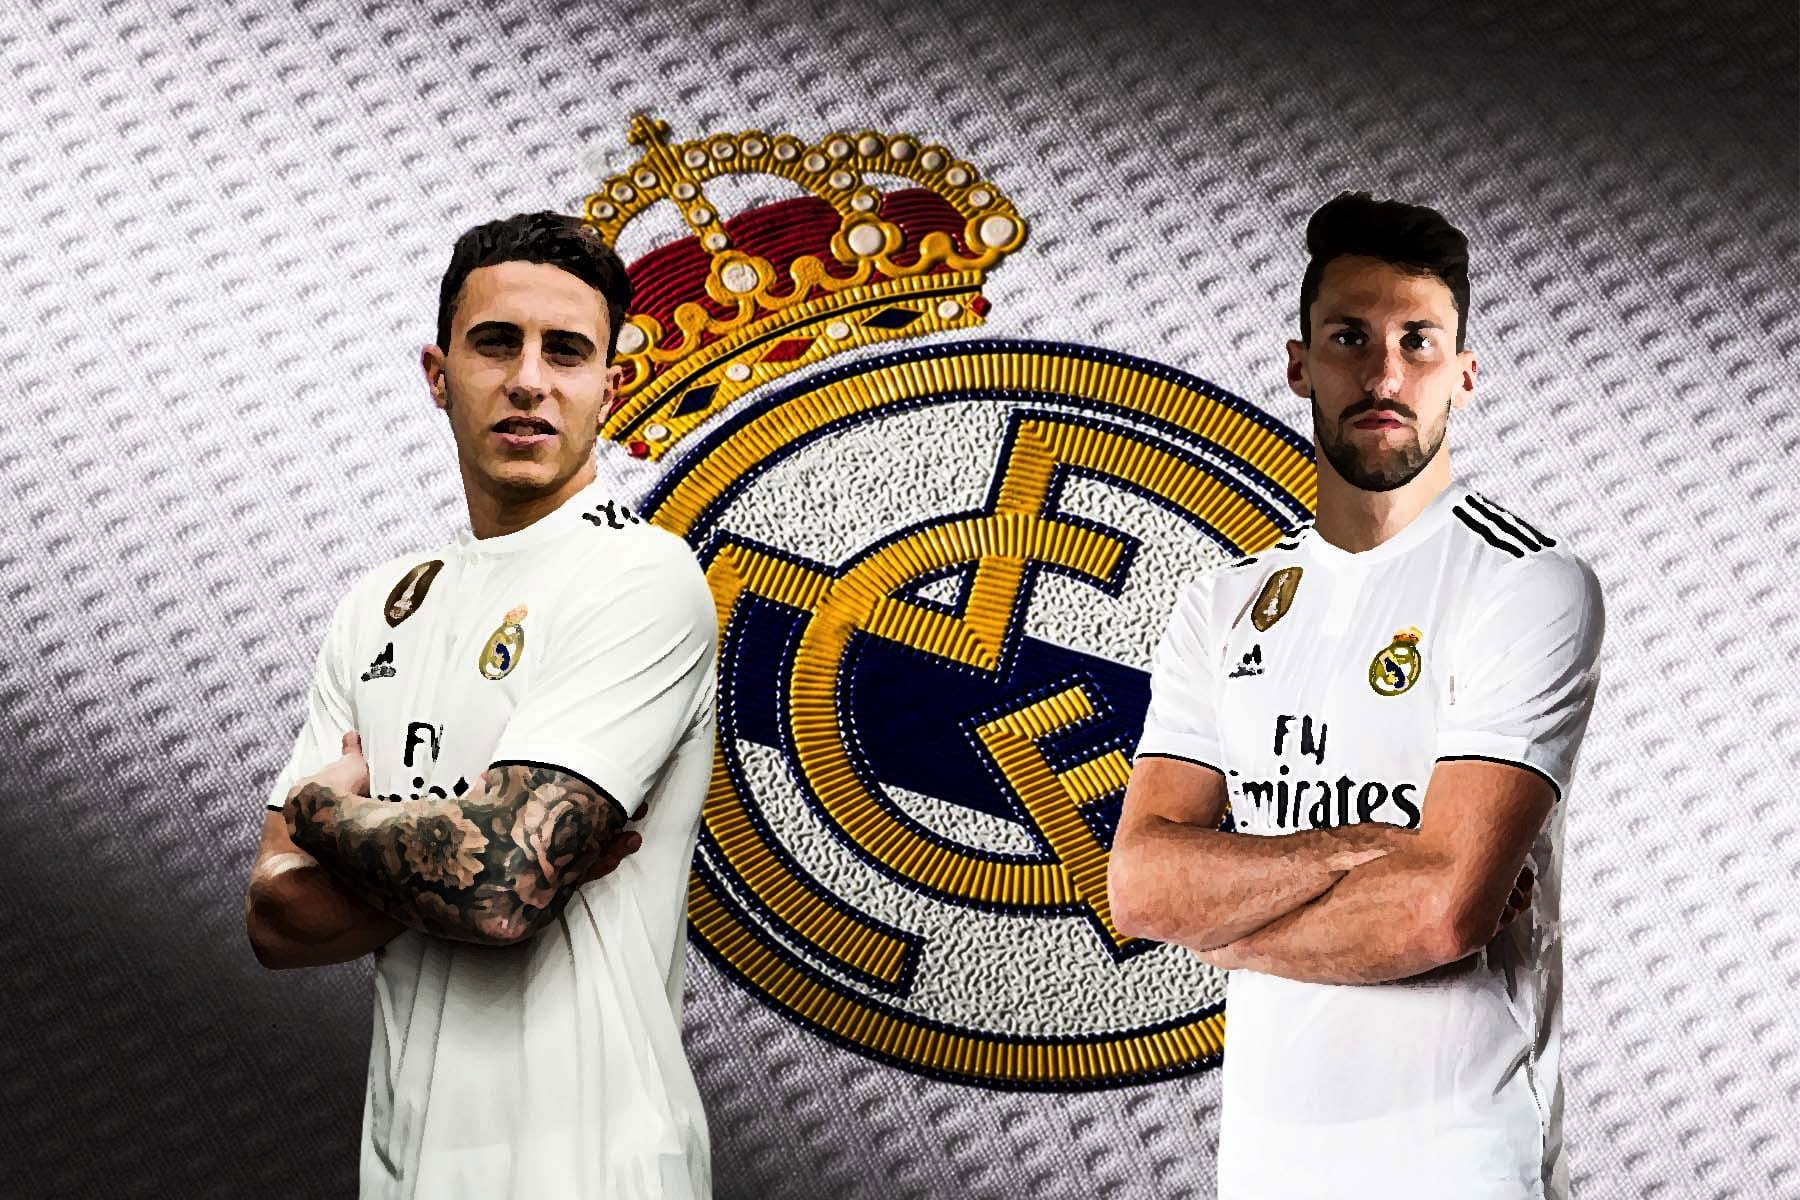 Mario Hermosa & Mario Pedraza to Real Madrid